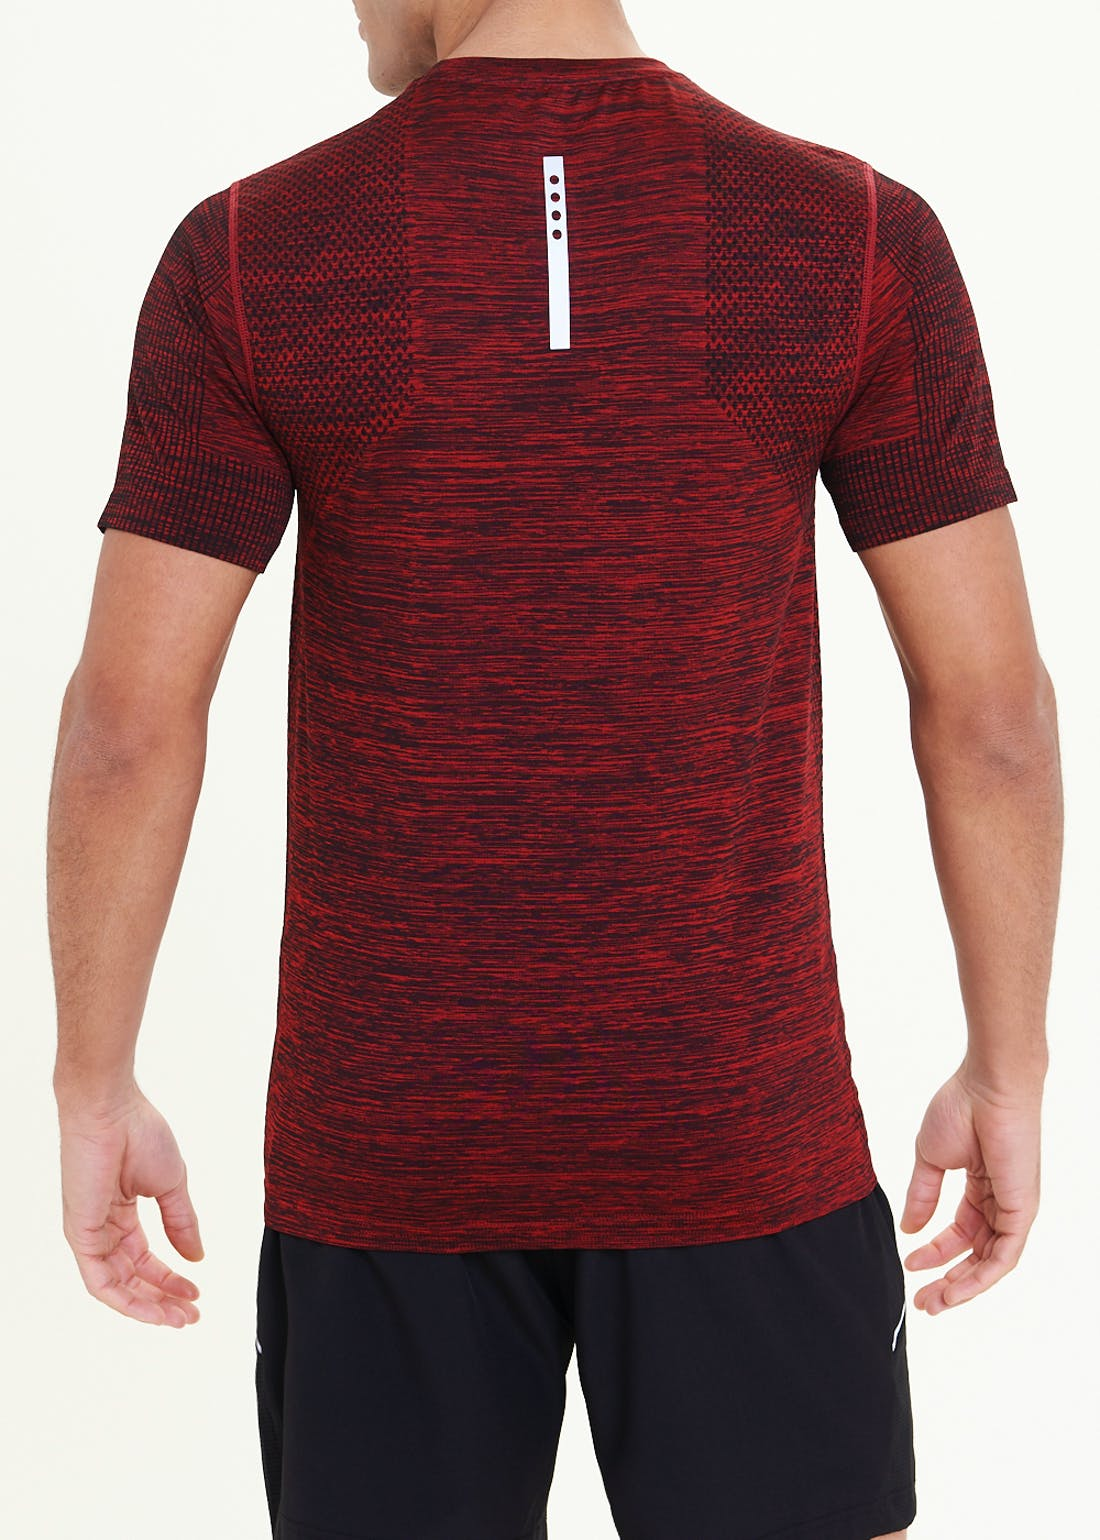 Souluxe Red Seamless Gym T-Shirt